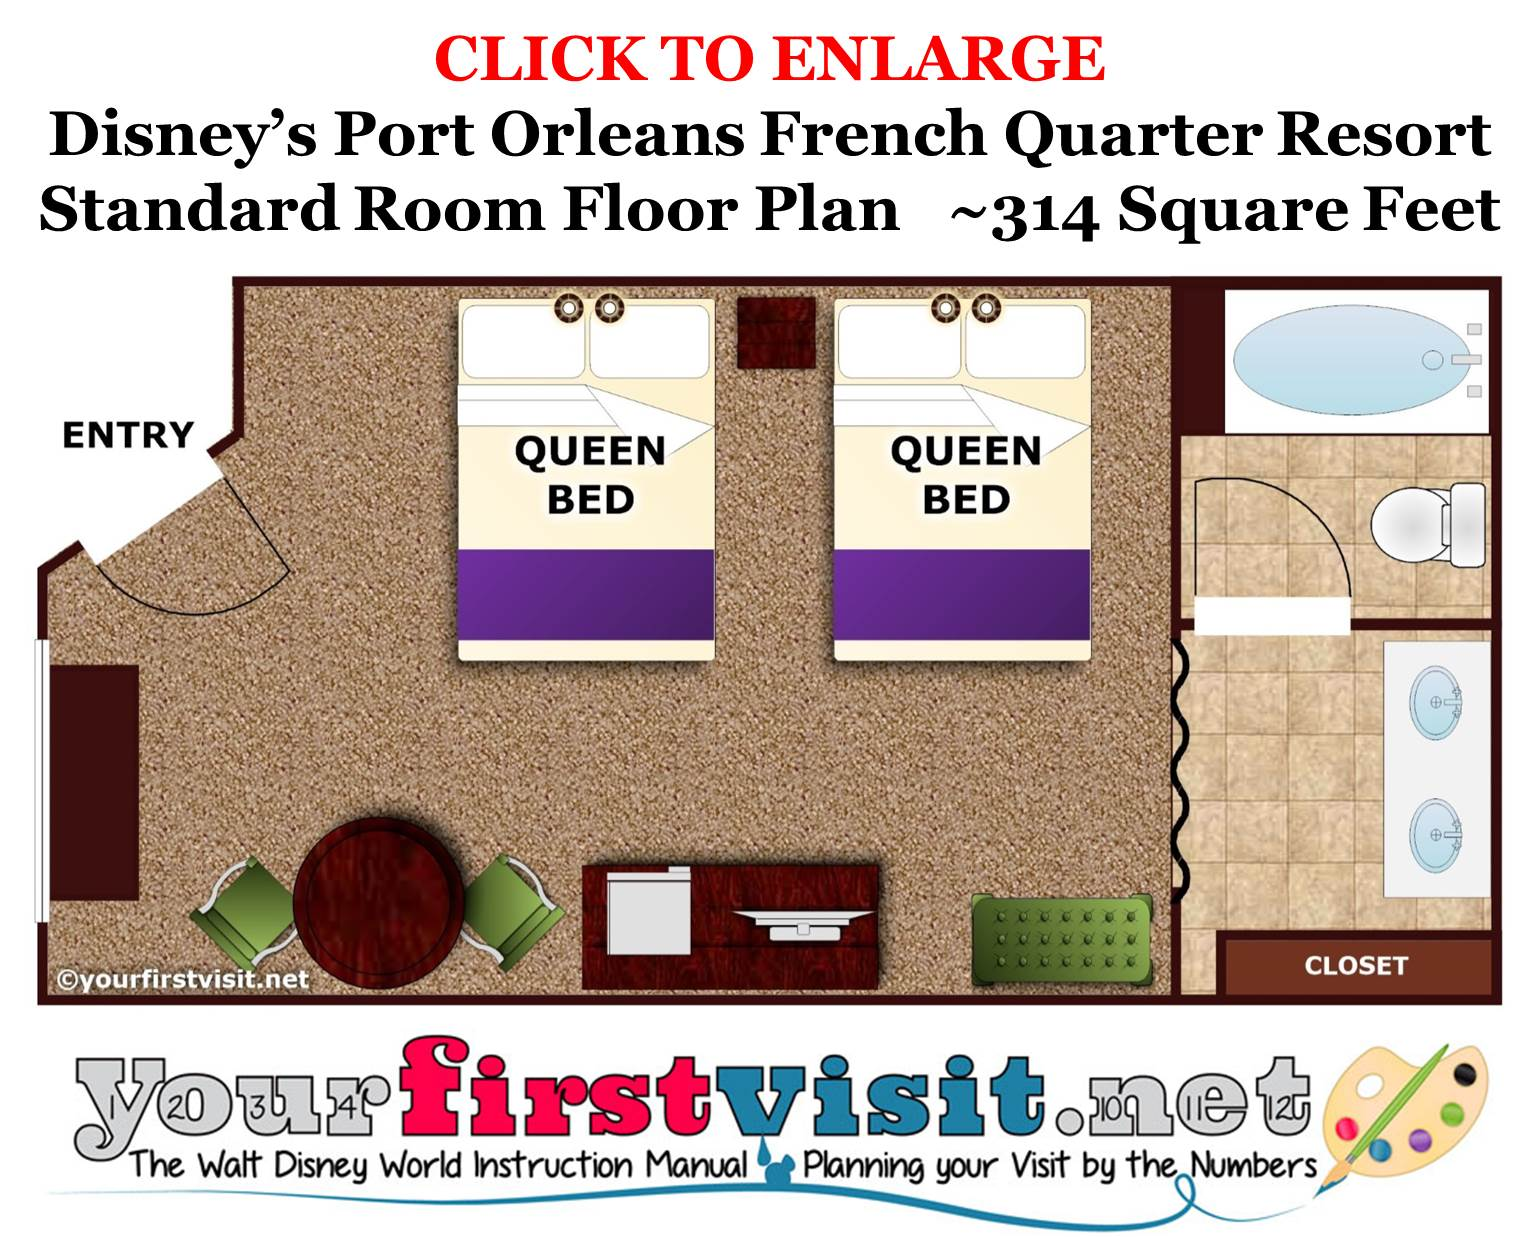 Floor Plan Standard Room Disney's Port Orleans French Quarter Resort from yourfirstvisit.net